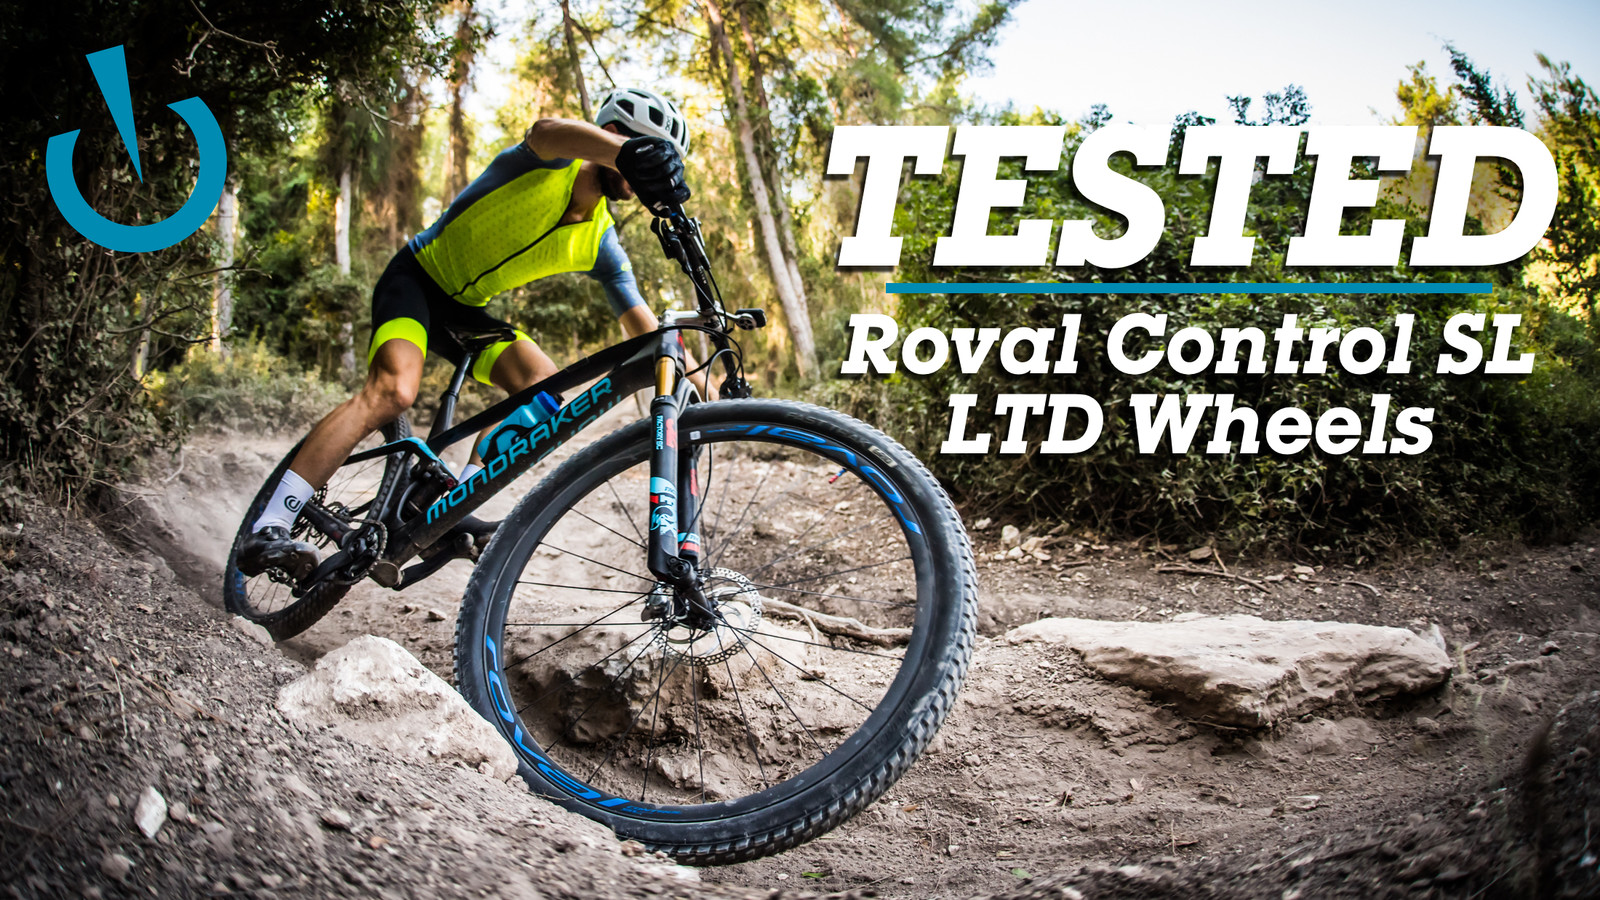 Roval's New Control SL Wheels Are Crazy Light and Crazy Fast - Review